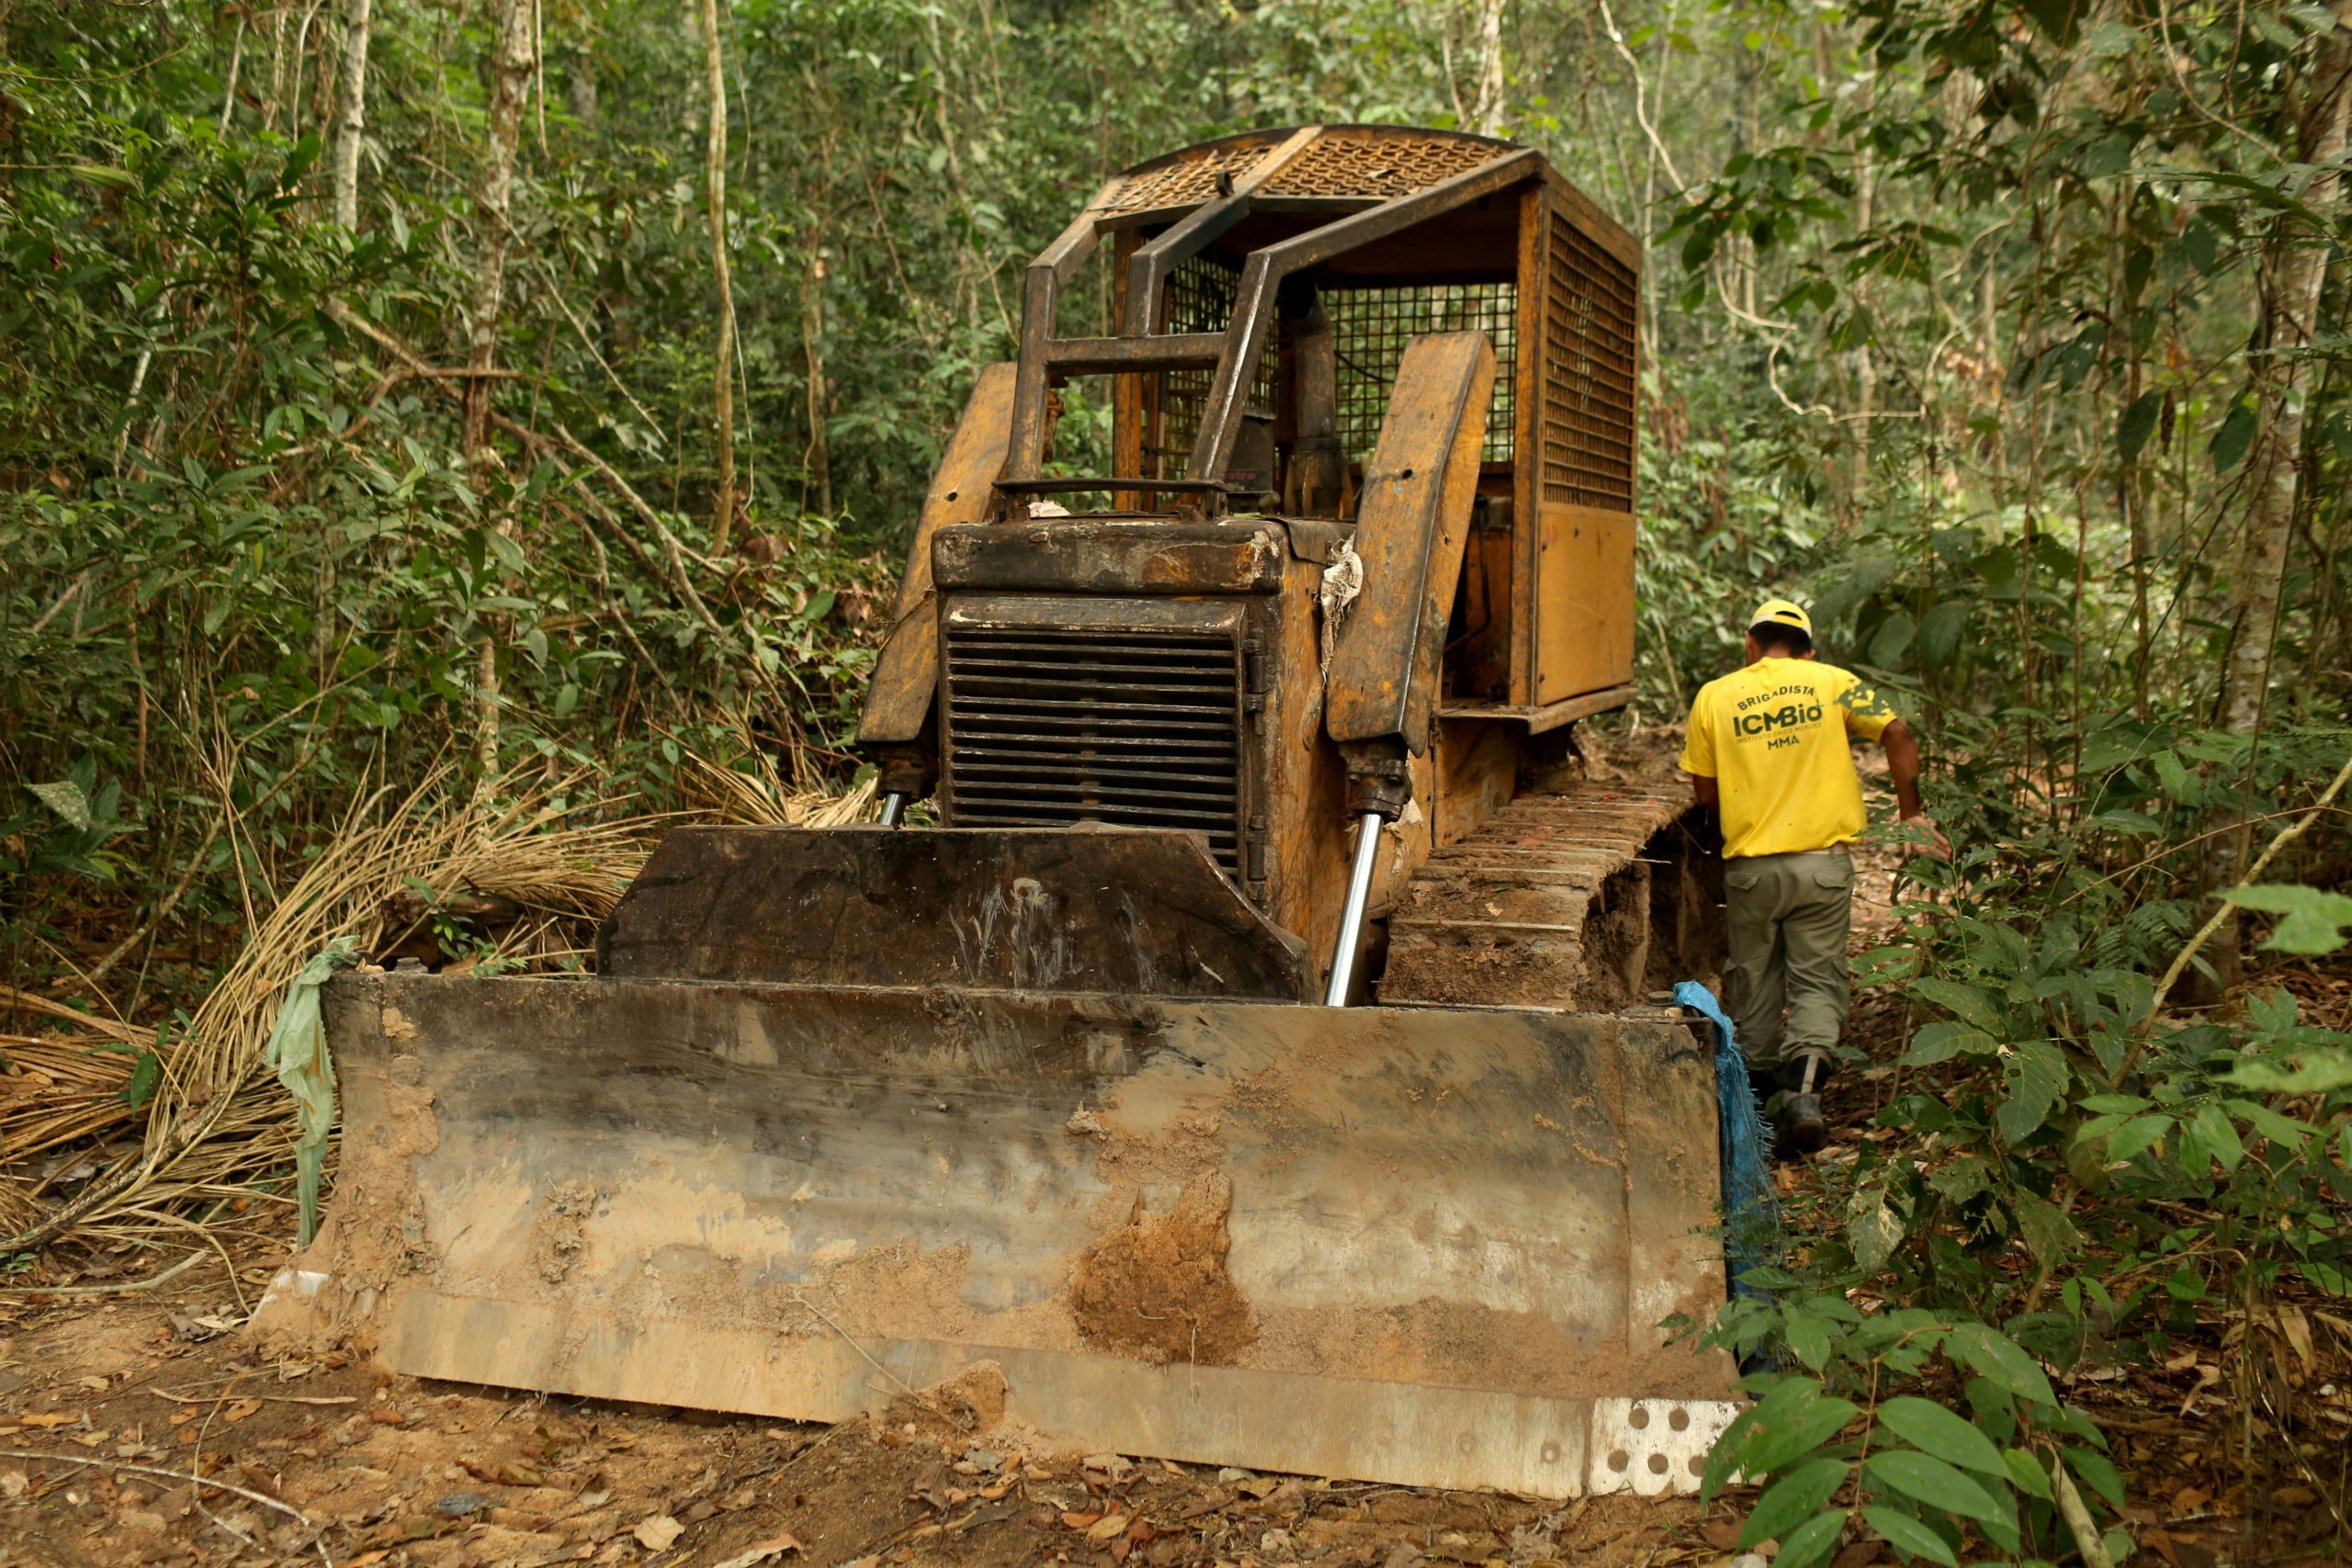 science.thewire.in: Forest Rangers Struggle To Prevent Poaching Amid Lockdowns